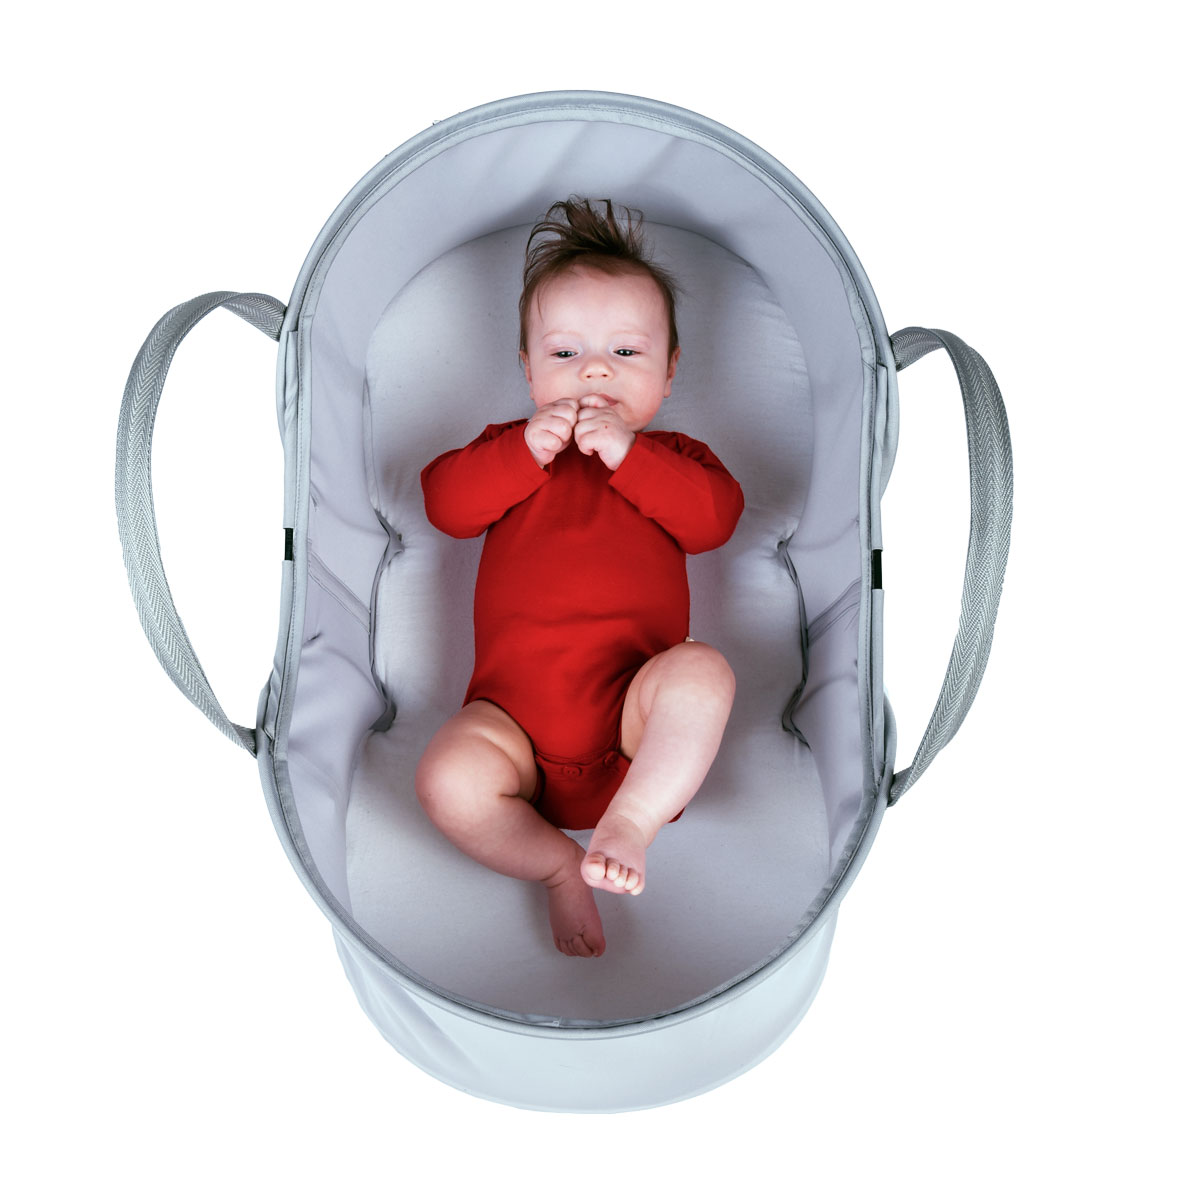 phil-teds-super-lightweight-travel-bassinet-front-view-with-super-happy-baby-inside